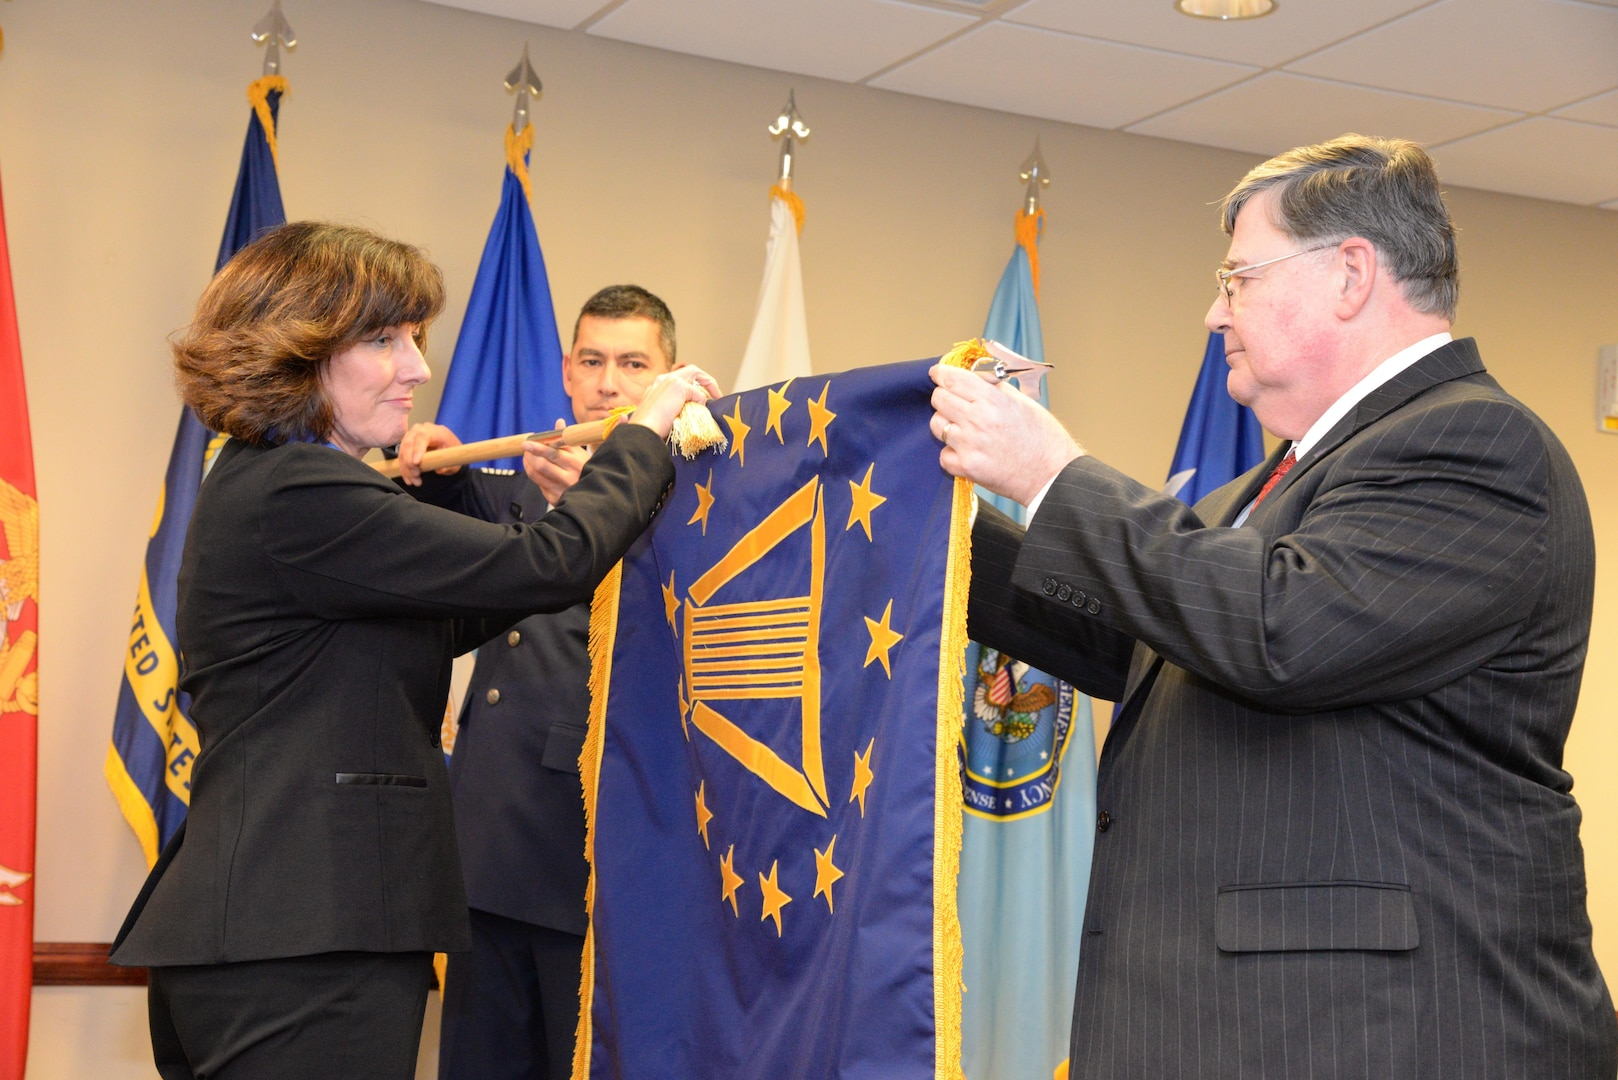 Pam Conklin, executive director of Defense Contract Management Agency Financial & Business Operations; and Timothy Callahan, executive director of DCMA Contract, ceremonially retire Jim Russell's Senior Executive Service flag at a Dec. 19 ceremony at Fort Lee, Virginia. Russell retired as the agency's deputy director after 36 years of federal service. (DCMA photo by Stephen Hickok)